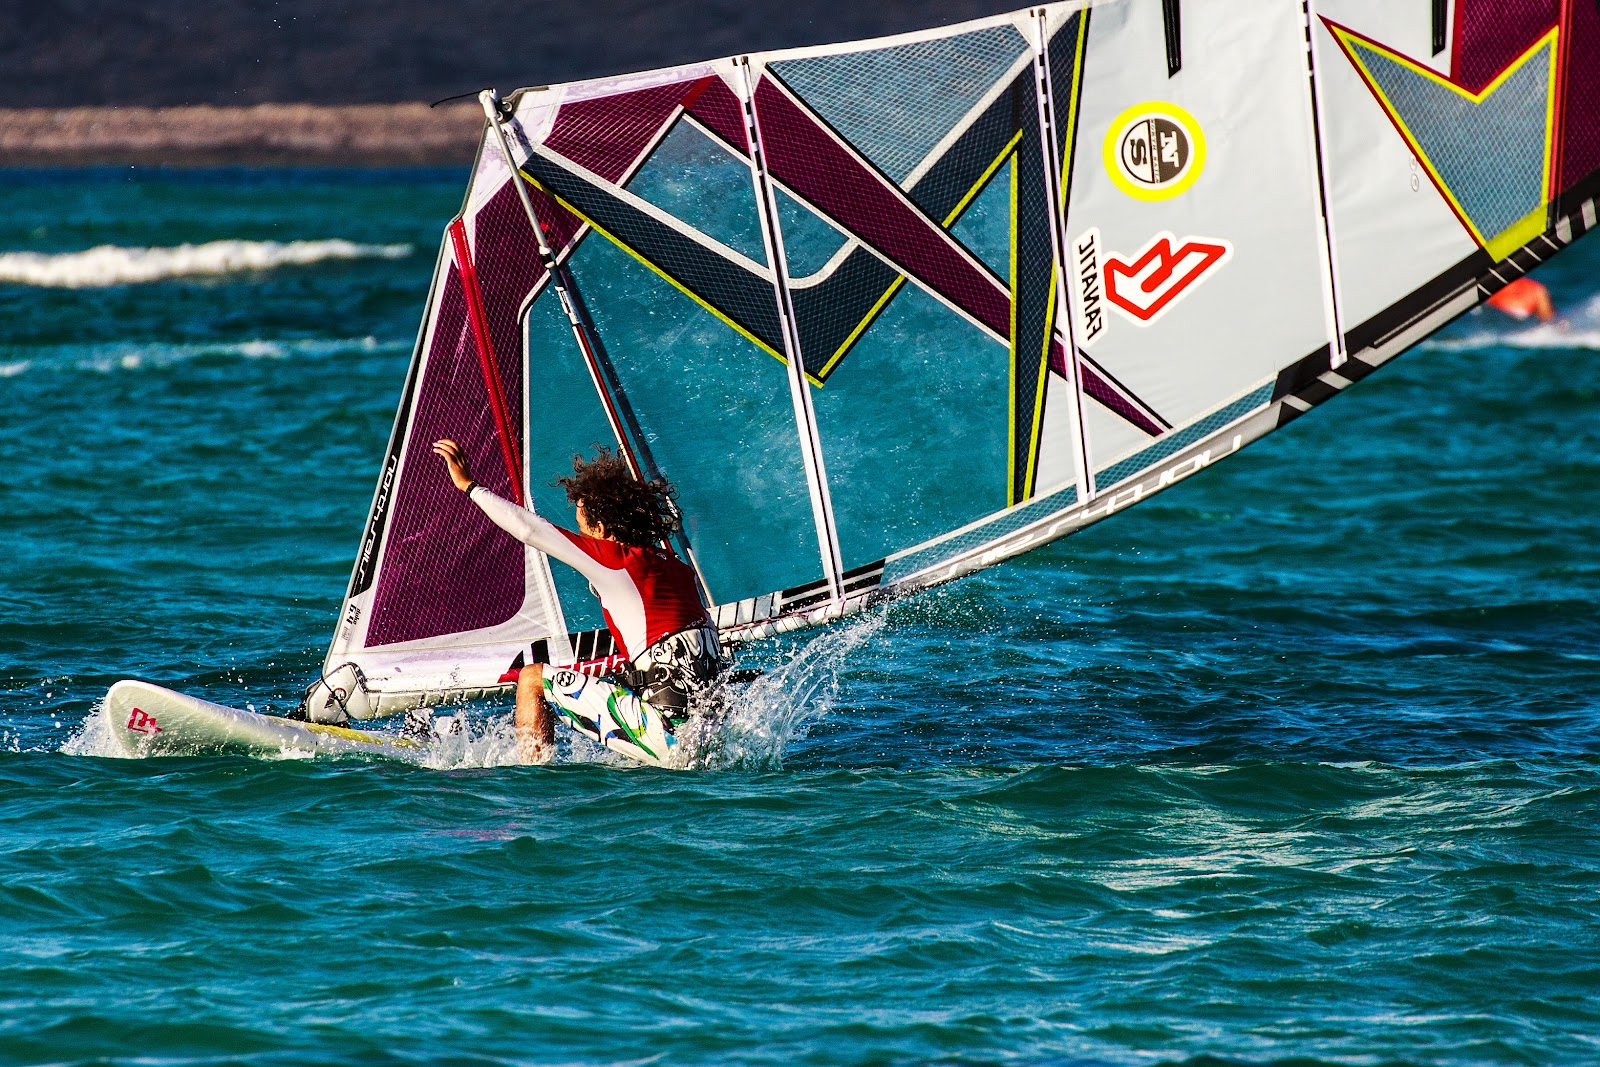 windsurfing vs. surfing (compare/contrast) essay Hawaii watersports essay  a windsurf board is a surf board with a sail attached the windsurfer steers themselves with the sail and rides the wave as a surfer would.